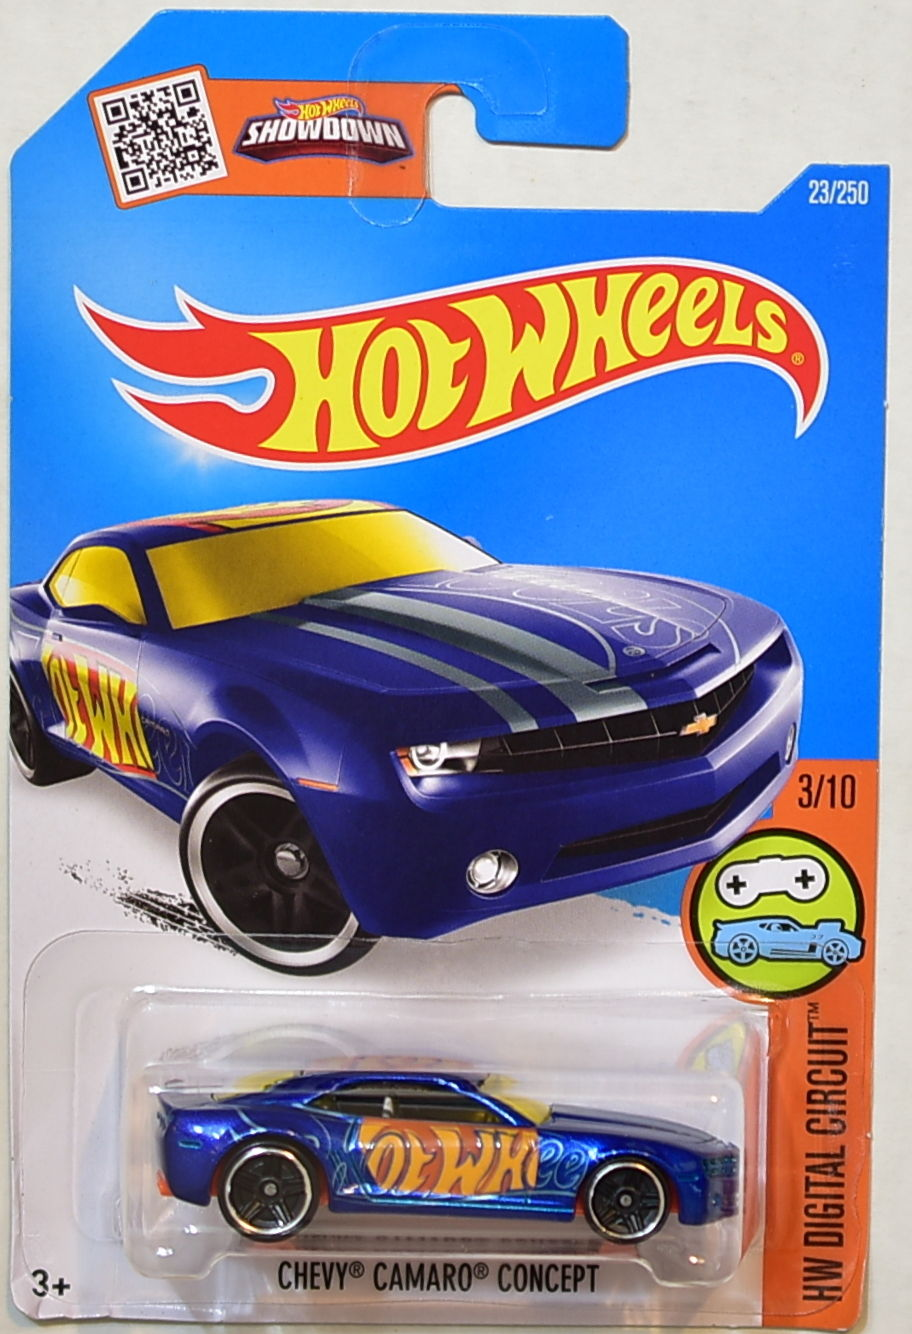 HOT WHEELS 2016 HW DIGITAL CIRCUIT CHEVY CAMARO CONCEPT #3/10 BLUE